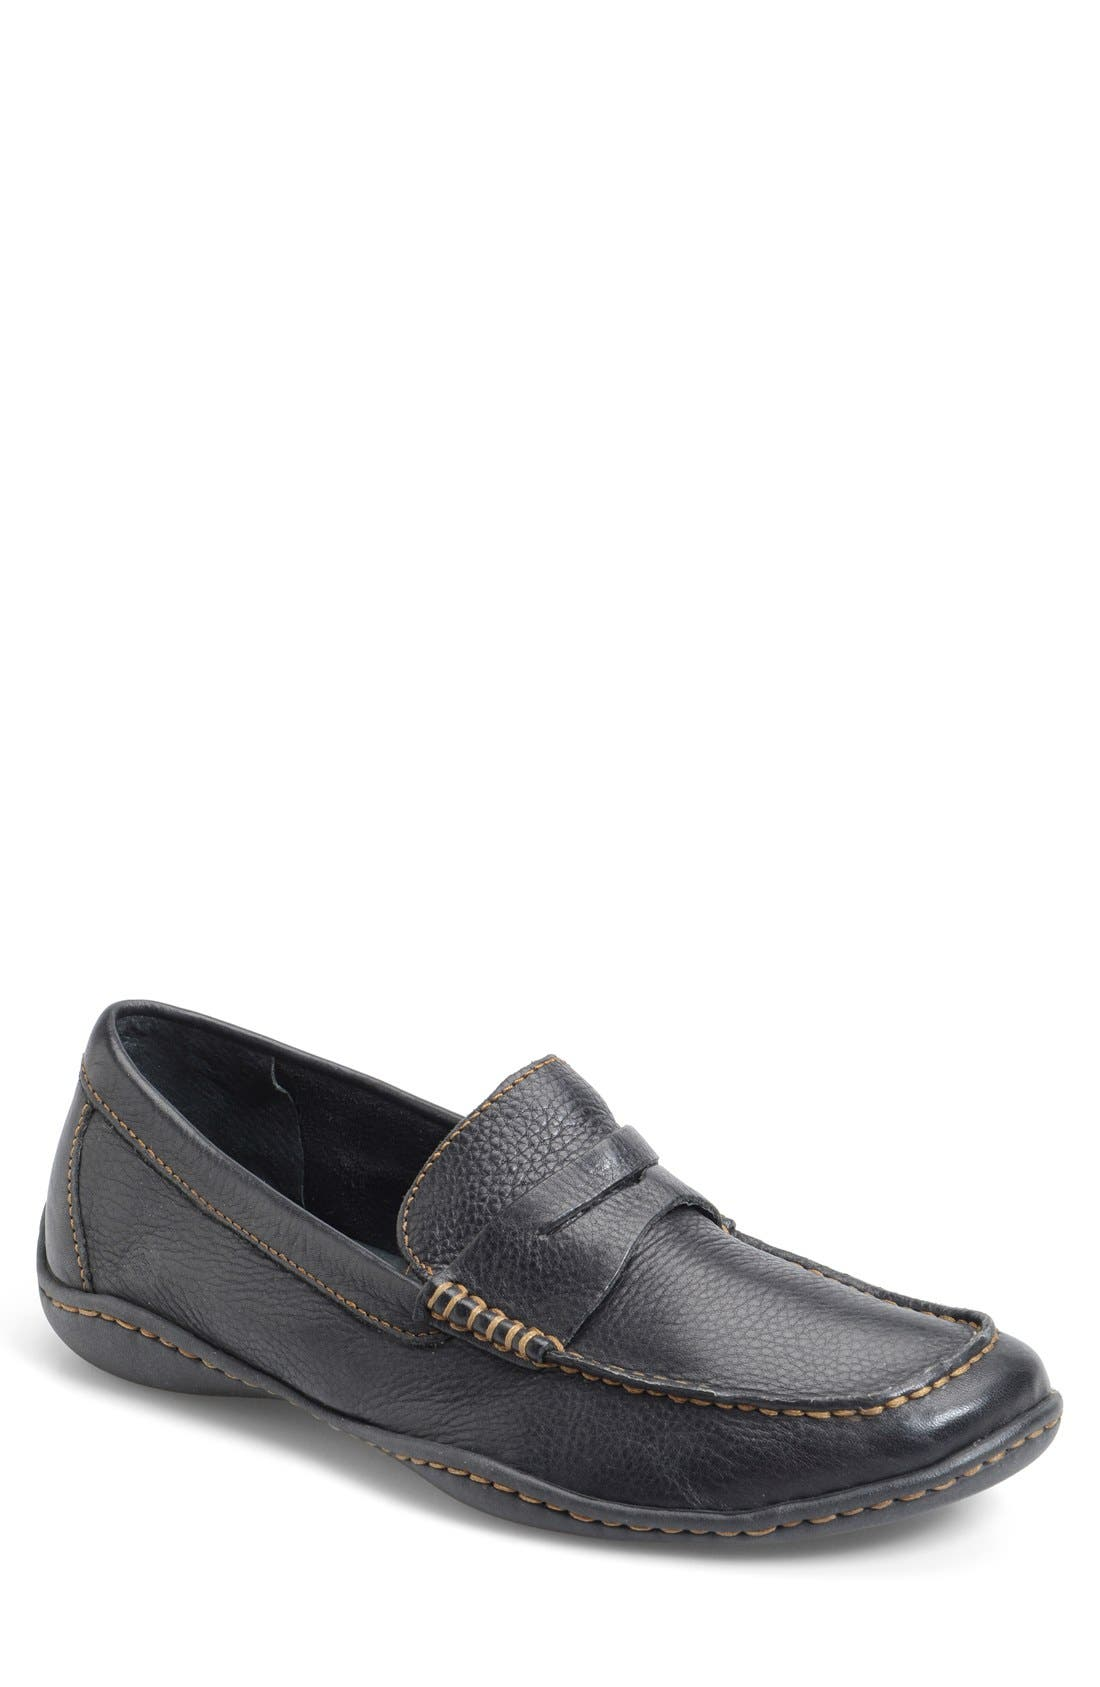 'Simon' Penny Loafer,                         Main,                         color, 001